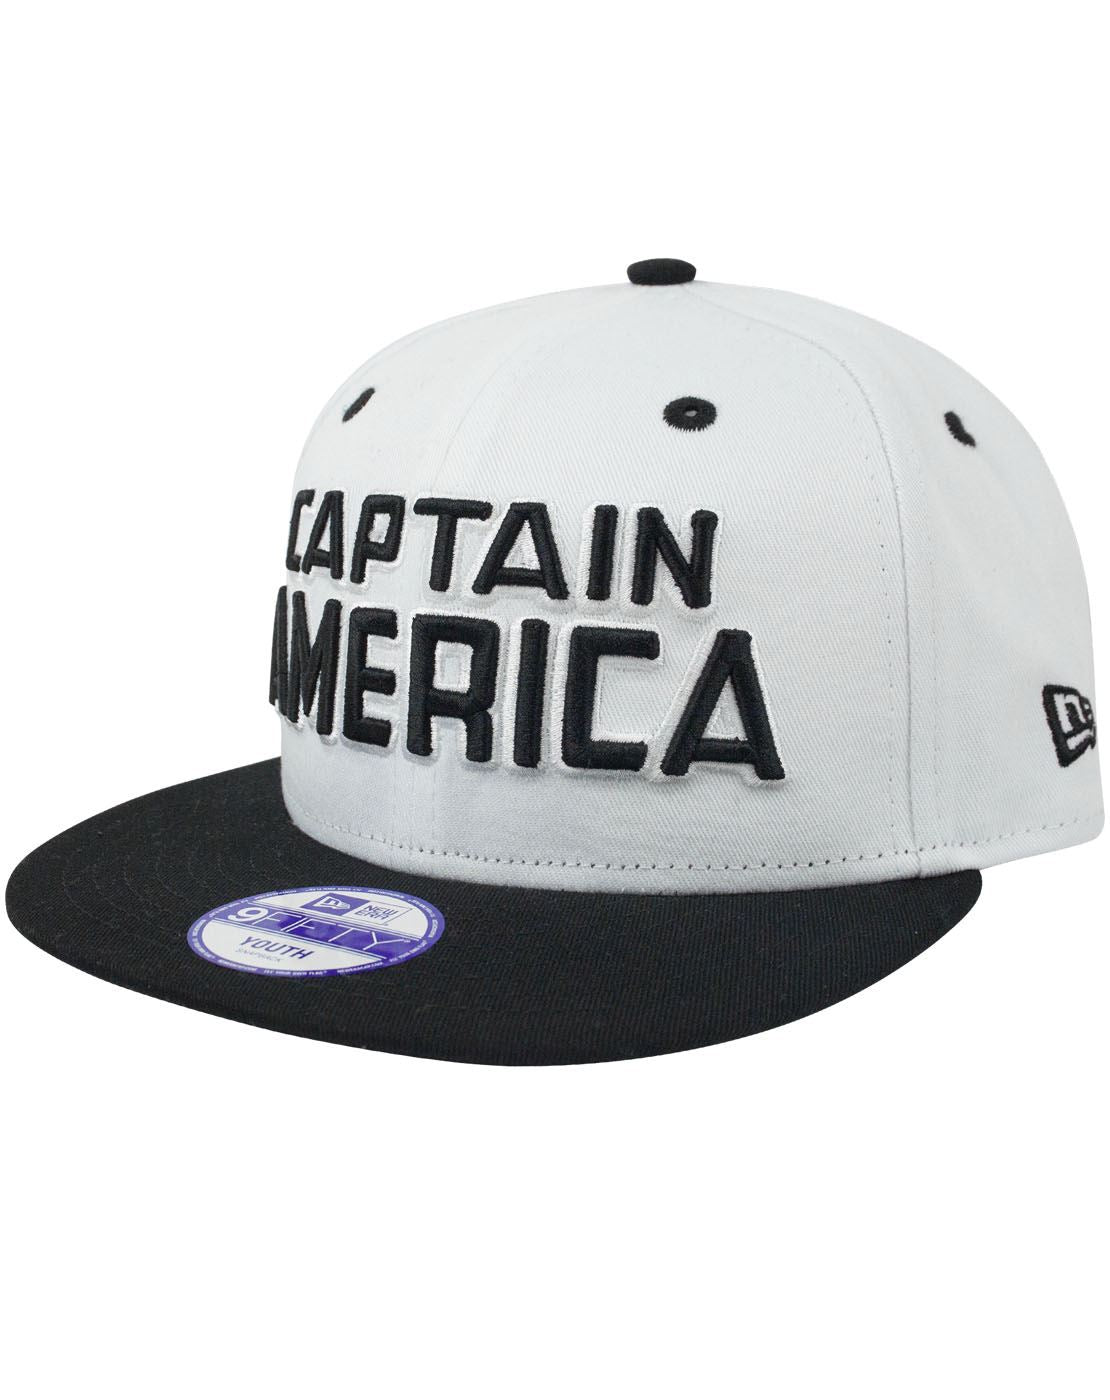 New Era 9Fifty Captain America Mono Hero Kid s Snapback Cap ... 72cb8042f6f2